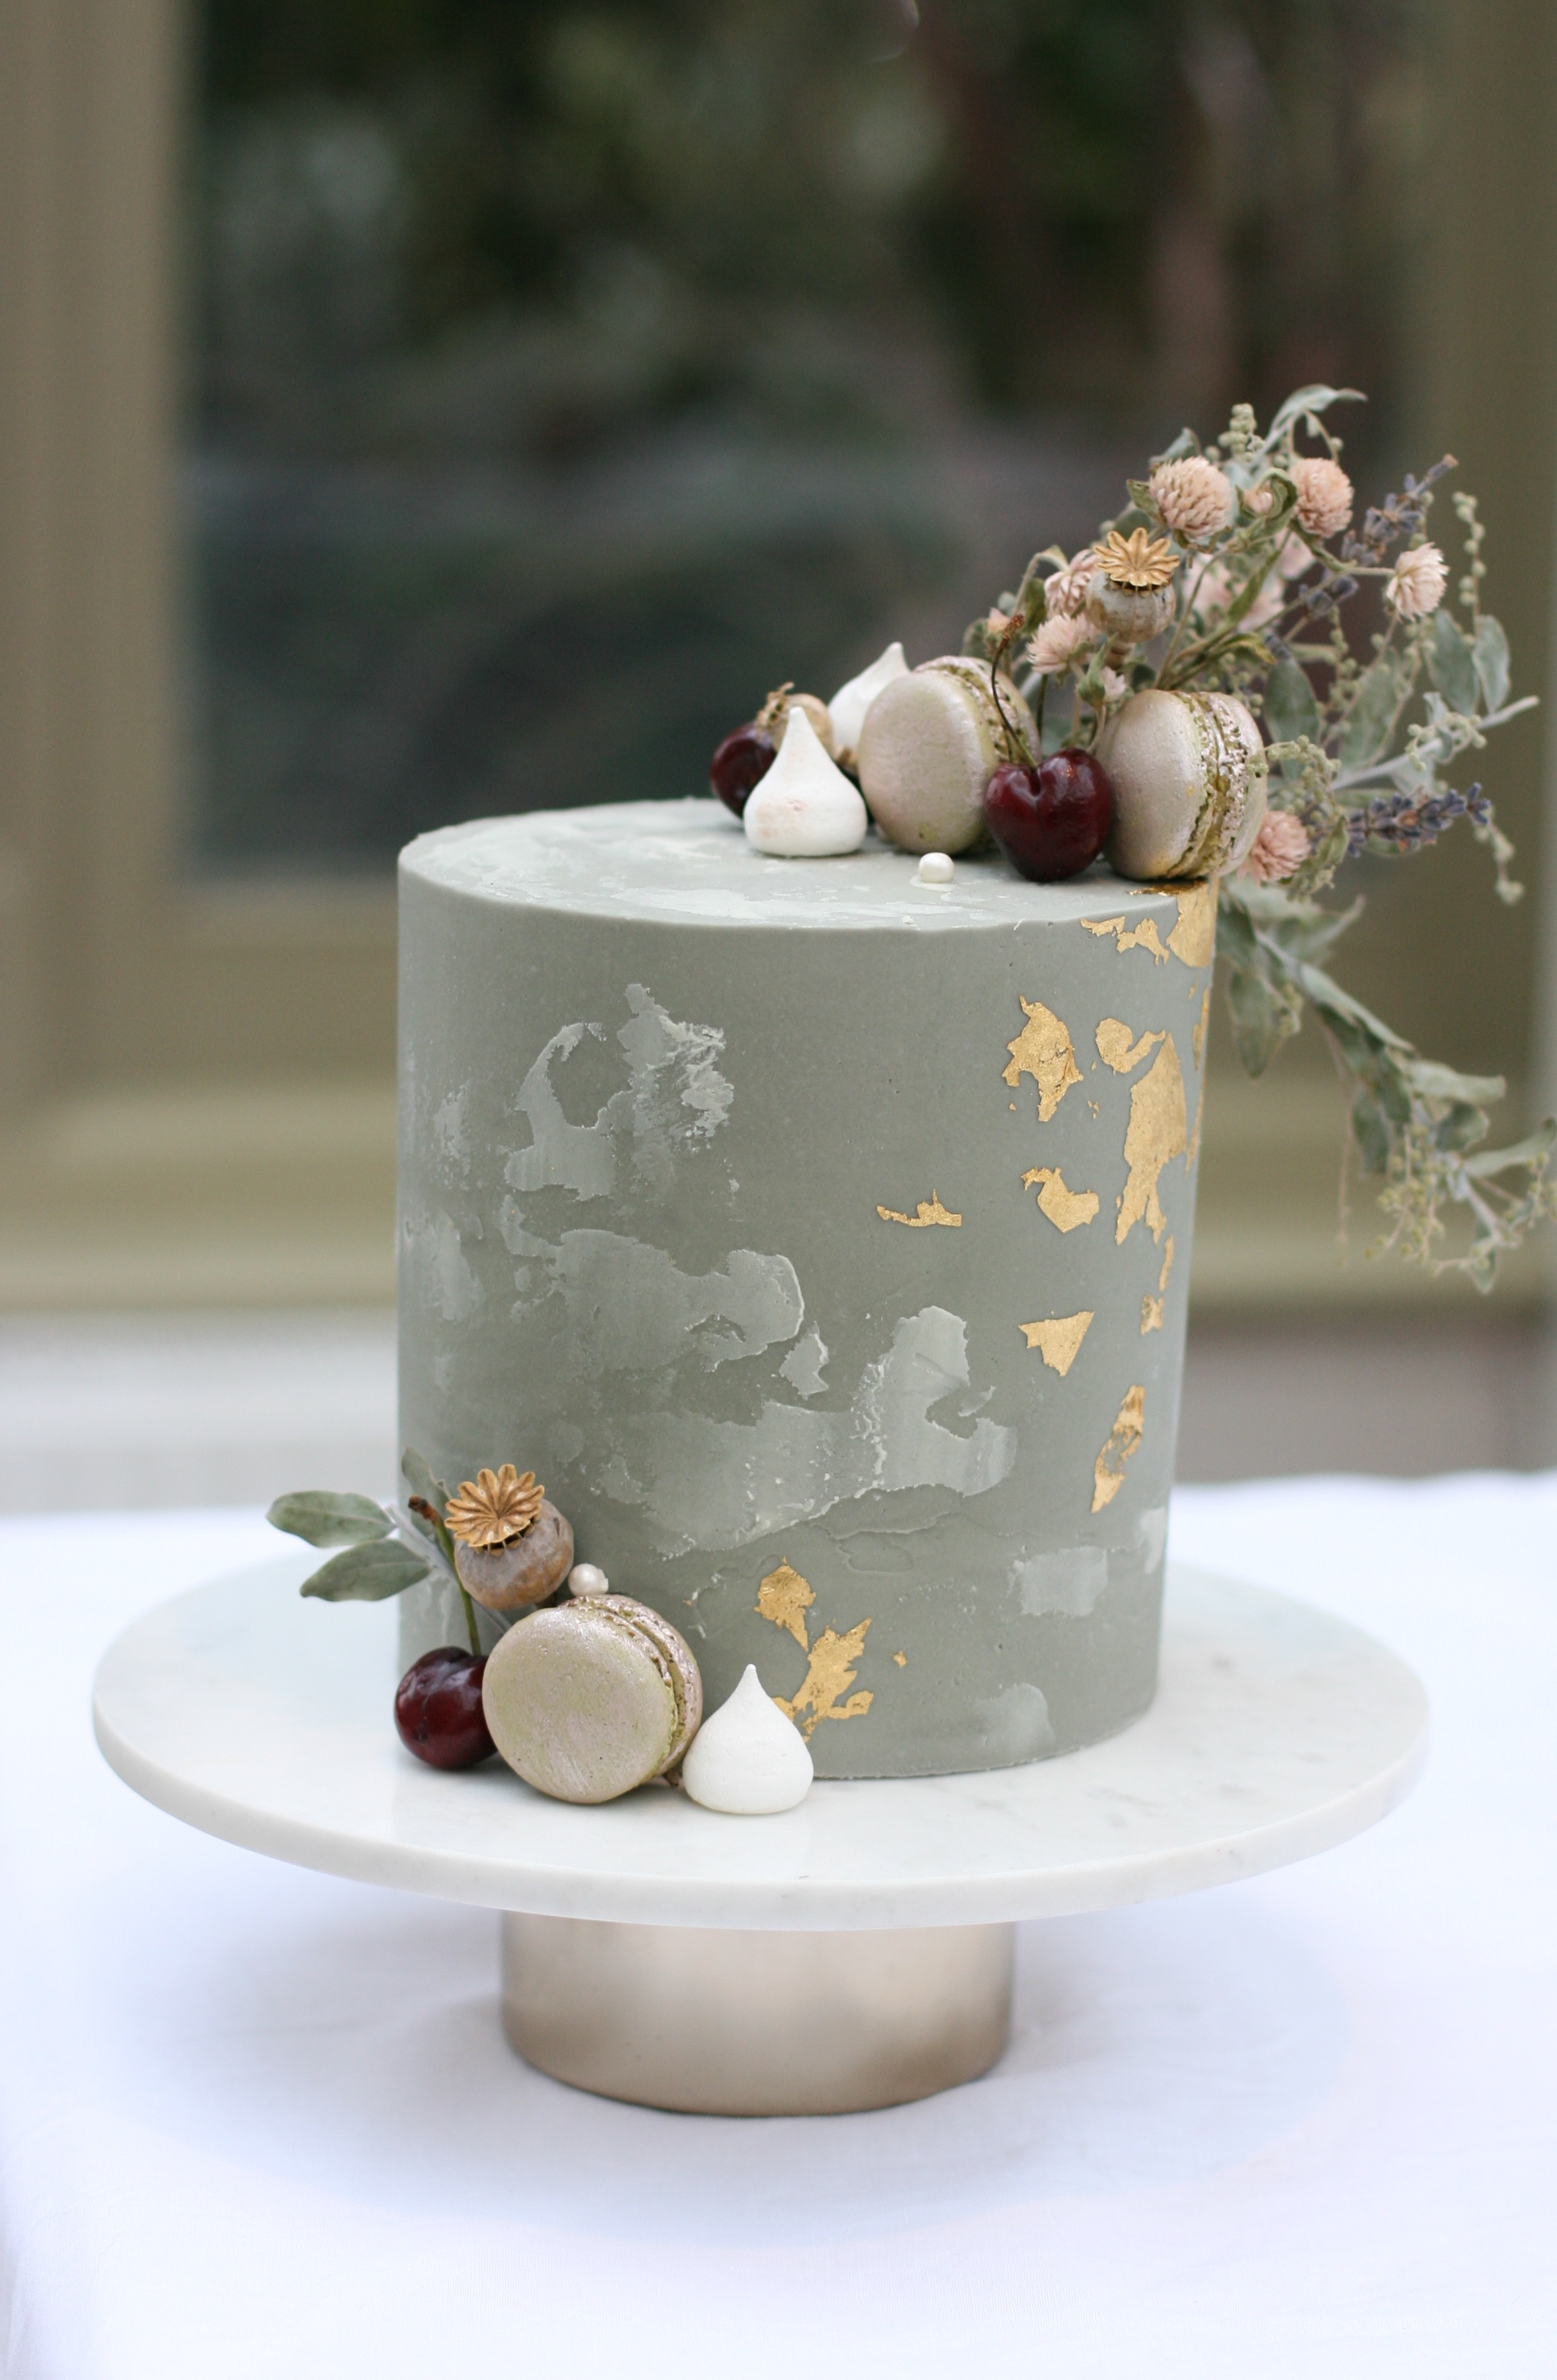 Grey concrete effect buttercream wedding cake with modern details of edible gold leaf, metallic macaron, mini meringue kisses and dried flowers